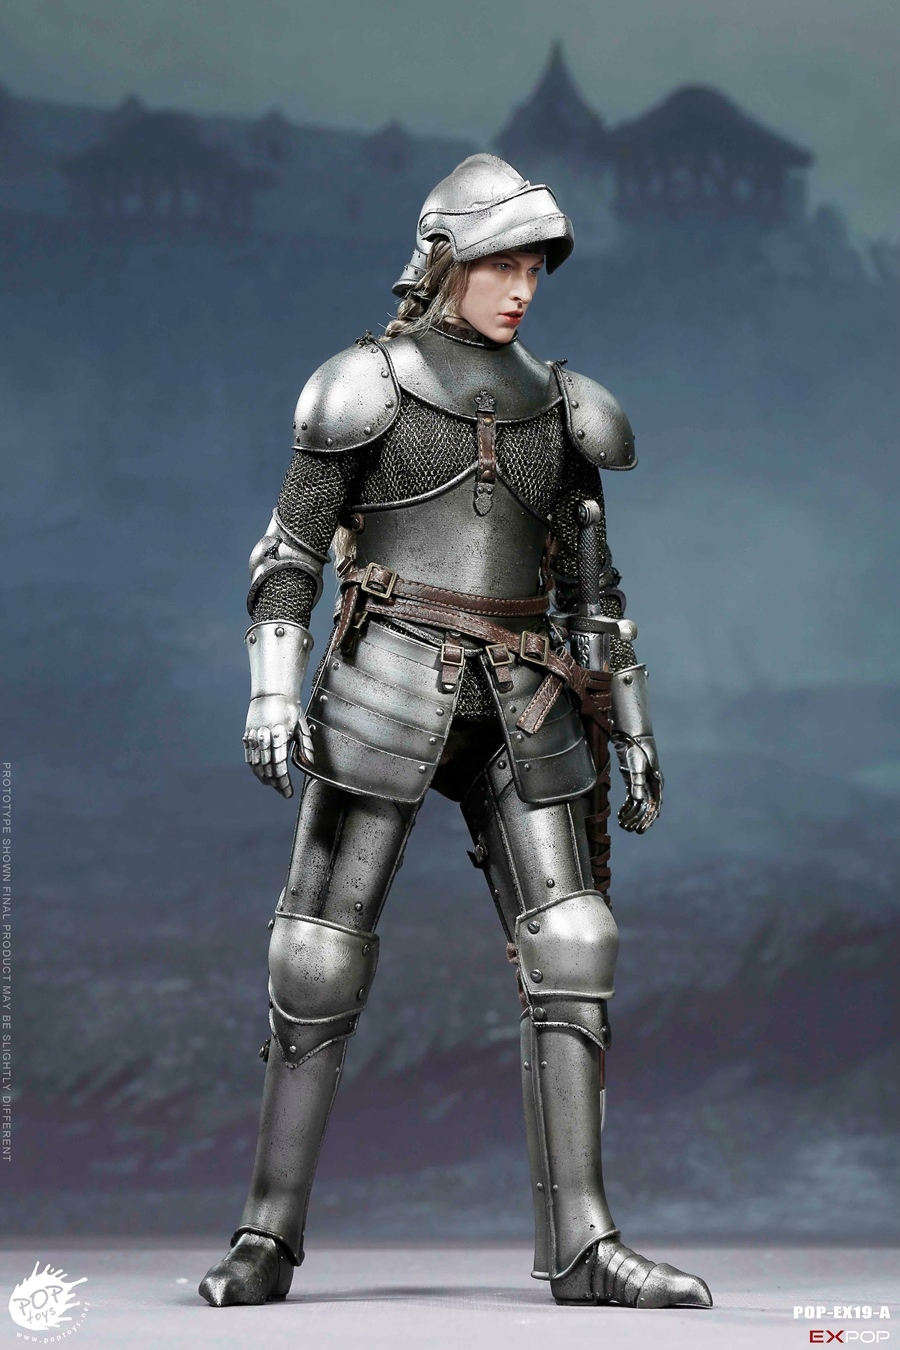 knight - NEW PRODUCT: POPTOYS New Products: 1/6 St. Knights - Assault Edition & Triumph Edition & Iron Armor (POP-EX19 ABC) 442